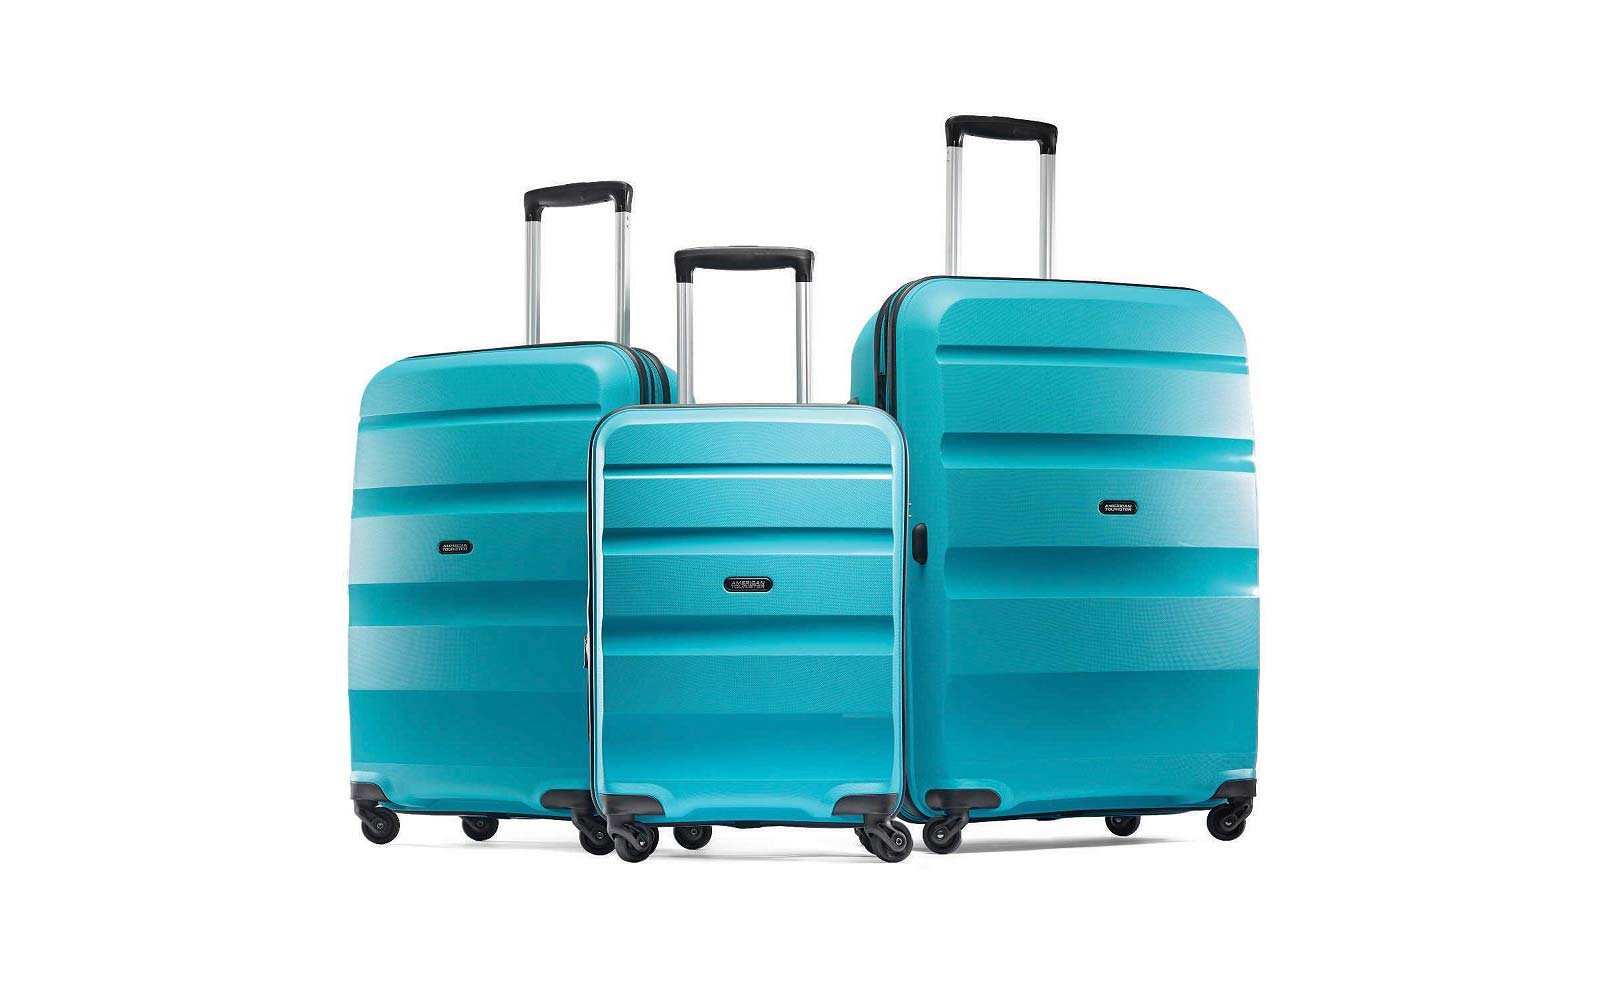 American Tourister Burst Spinner Luggage